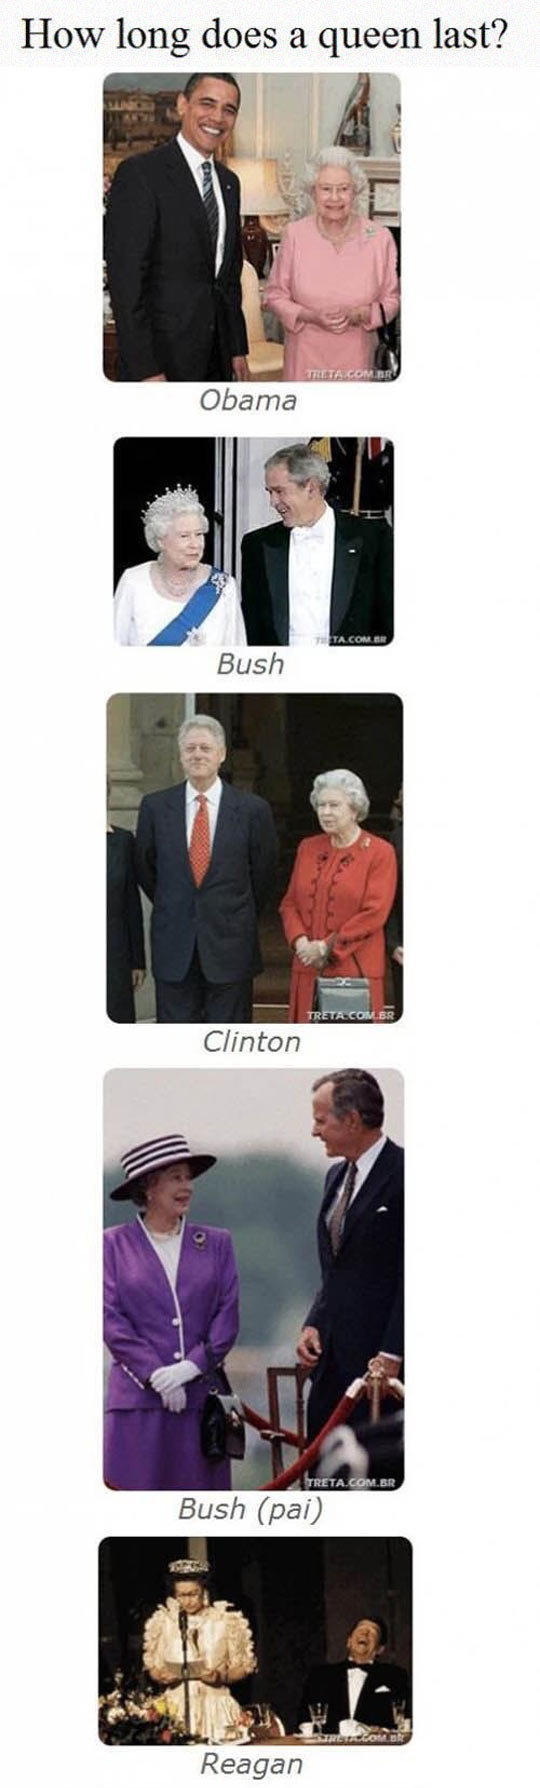 funny-Queen-Elizabeth-USA-presidents-old